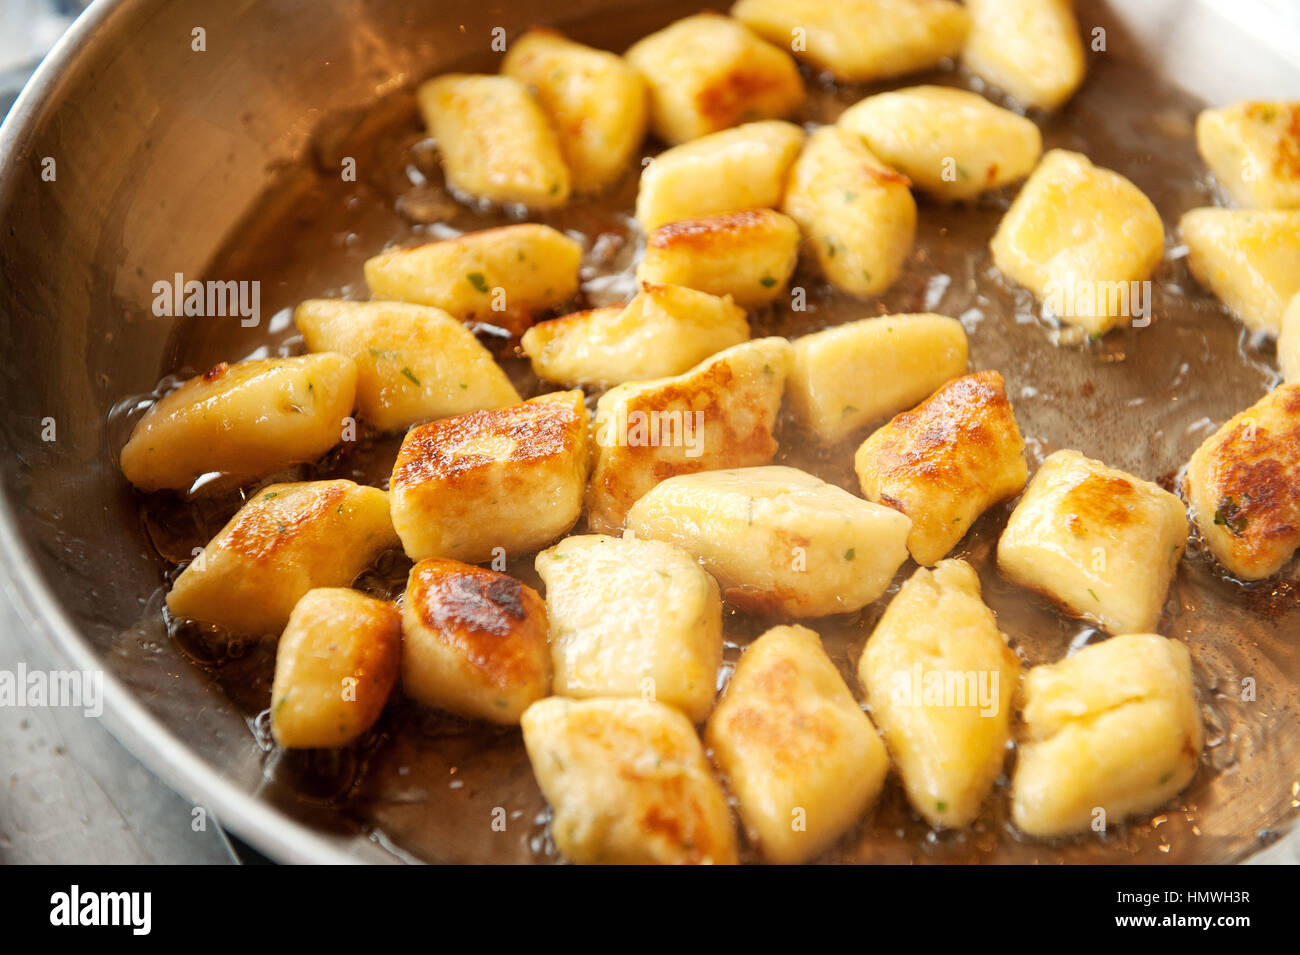 Gnocchi dumplings fry in duck fat in a skillet pan.    Gnocchi are various thick, soft dough dumplings that may - Stock Image